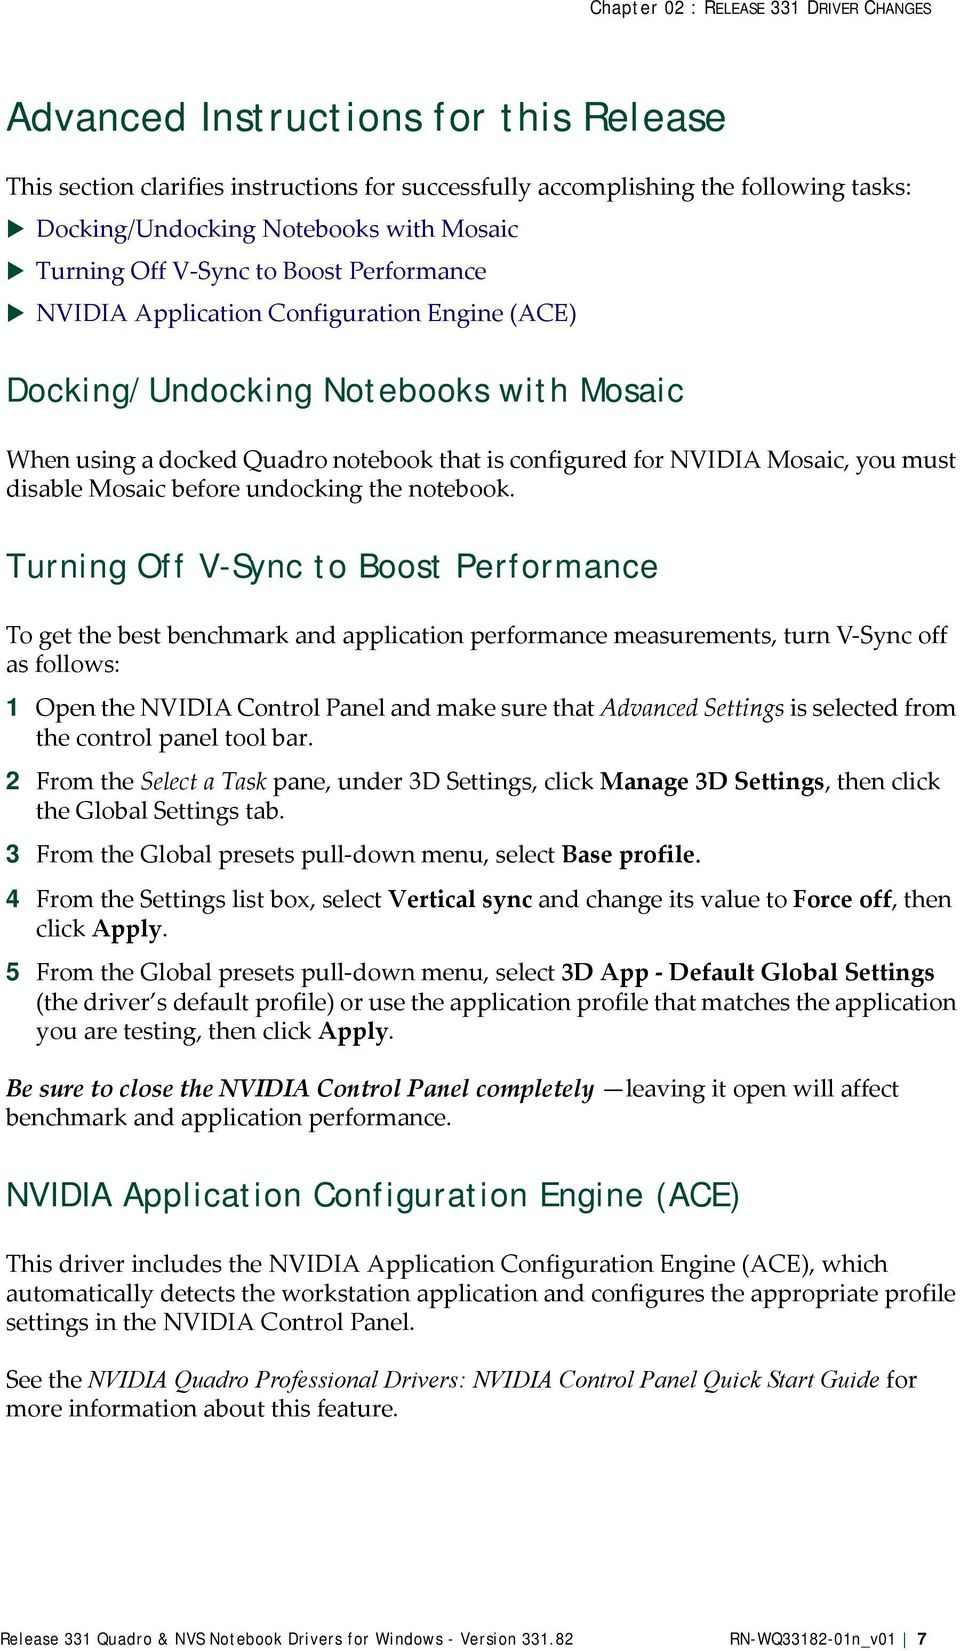 Release 331 Quadro & NVS Notebook Drivers for Windows - Version - PDF